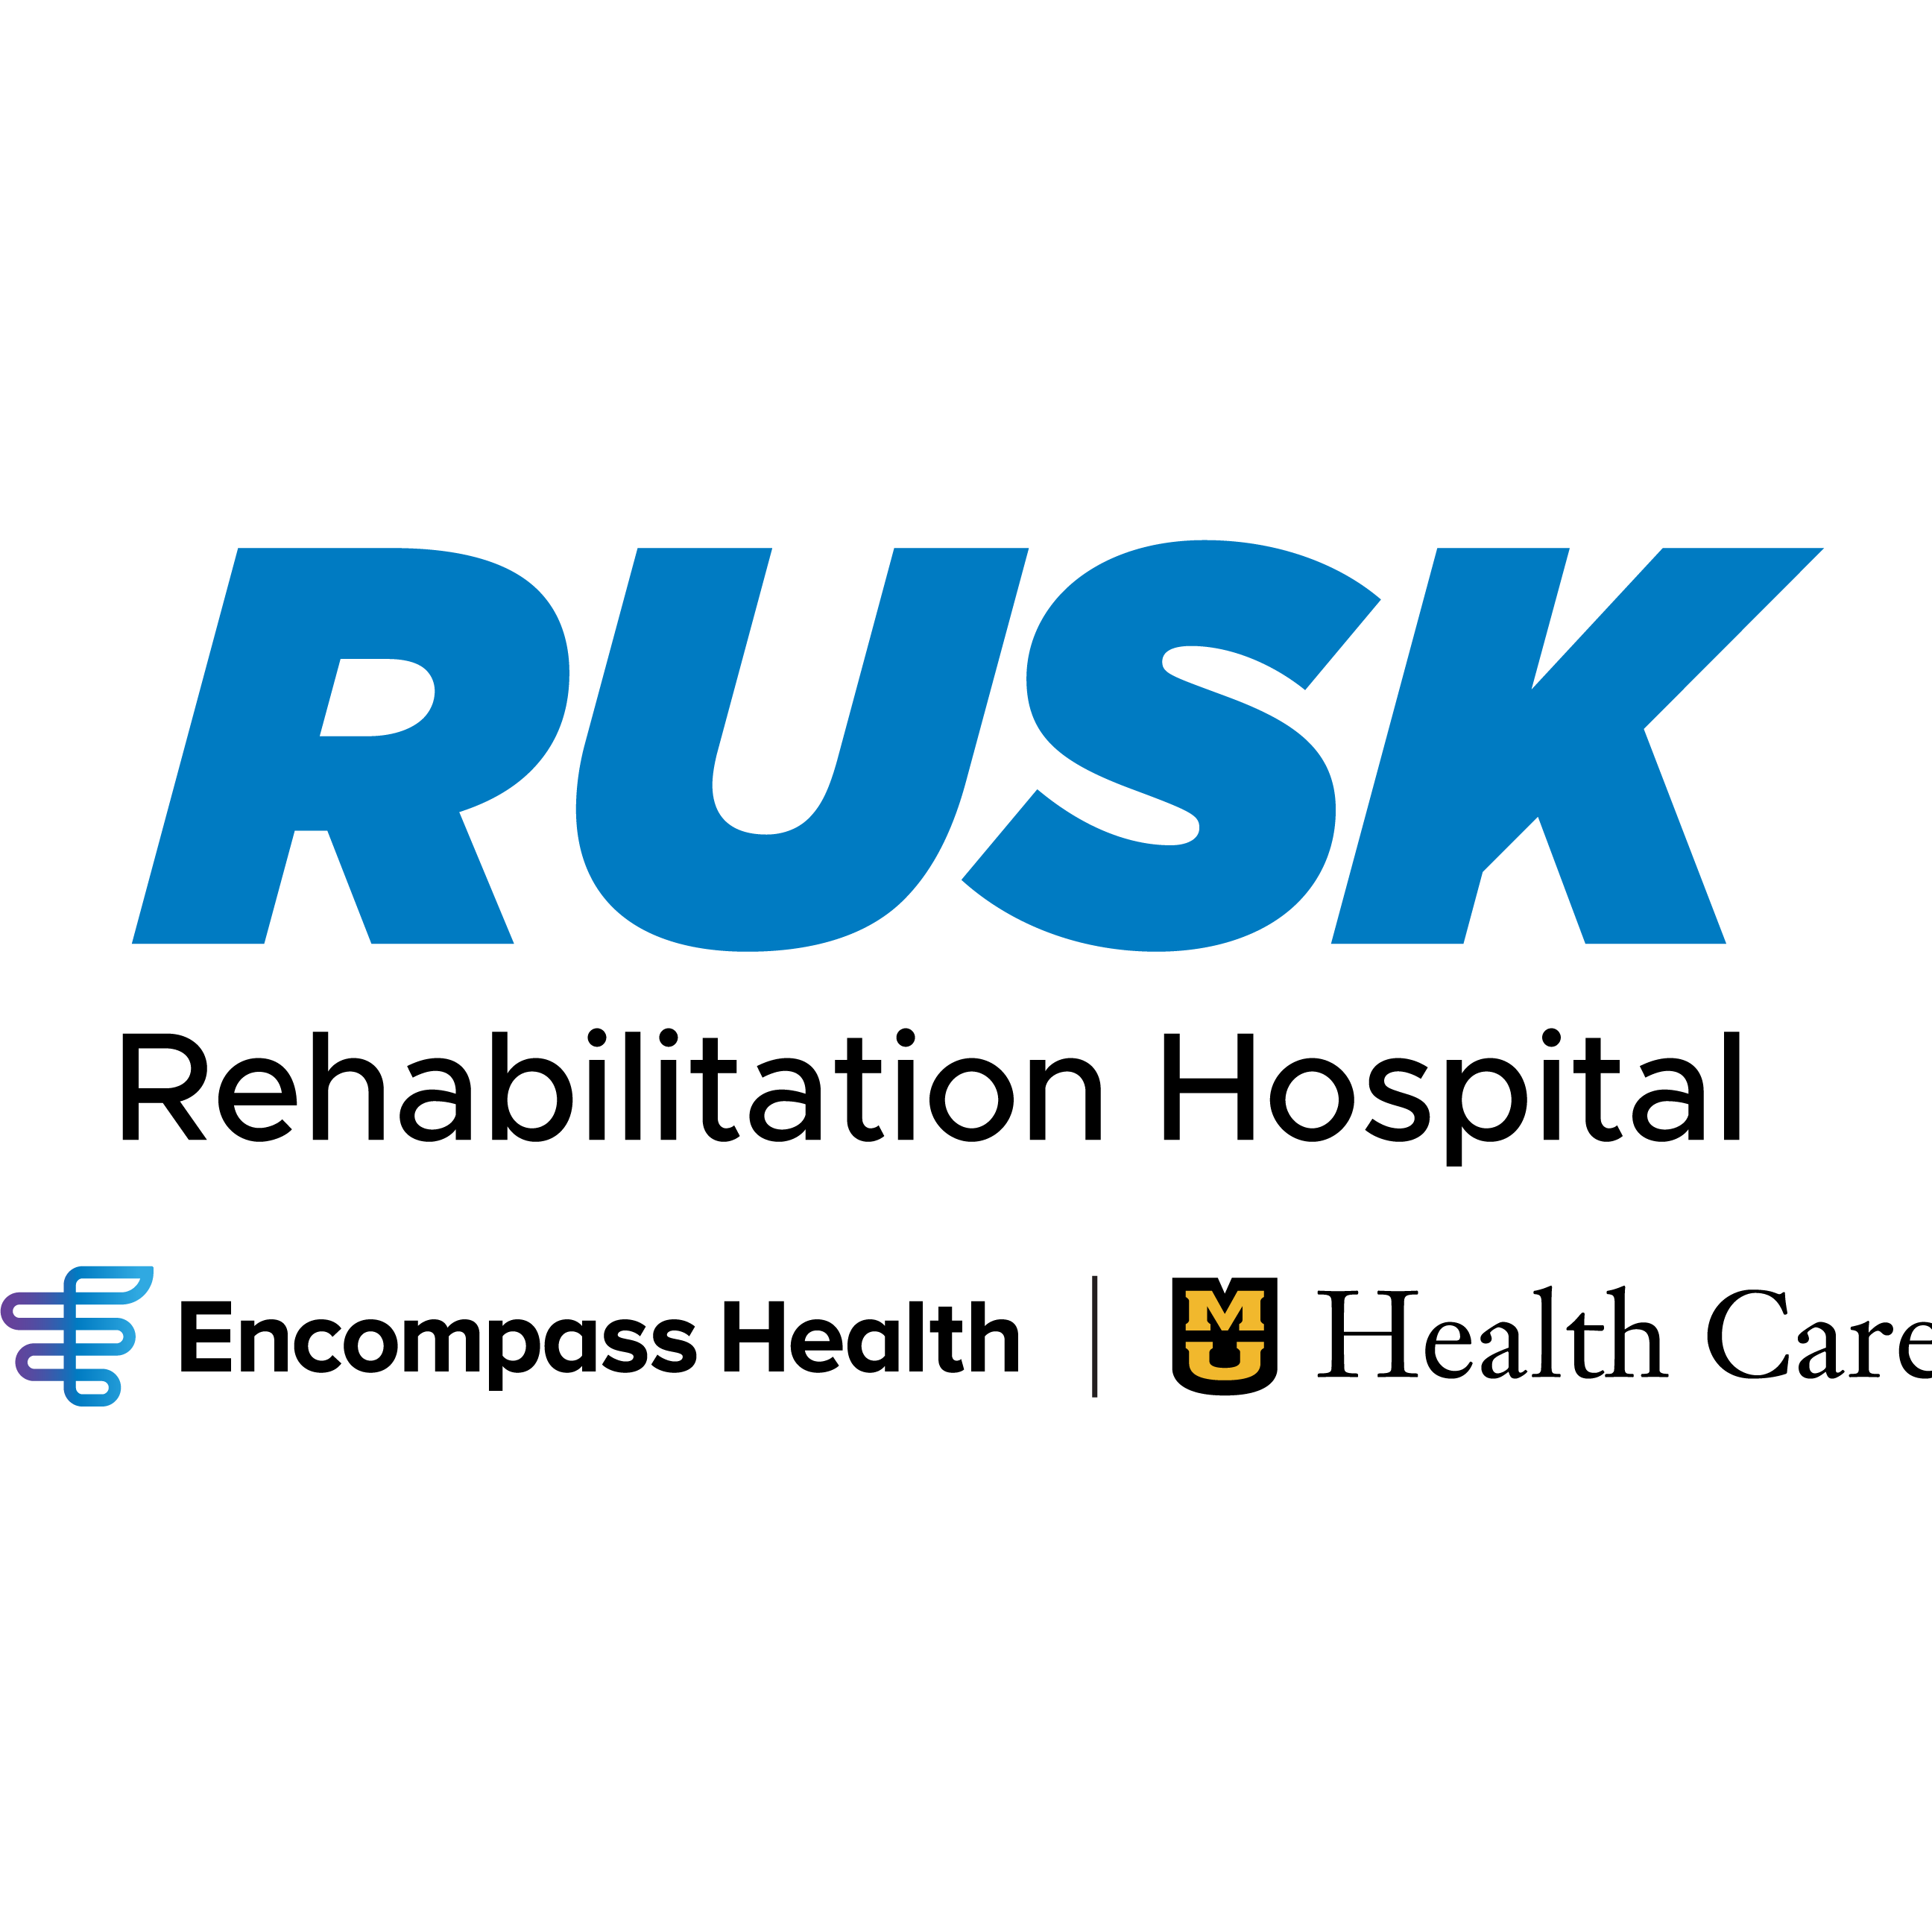 Rusk Rehabilitation Hospital, an affiliation of Encompass Health and MU Health Care